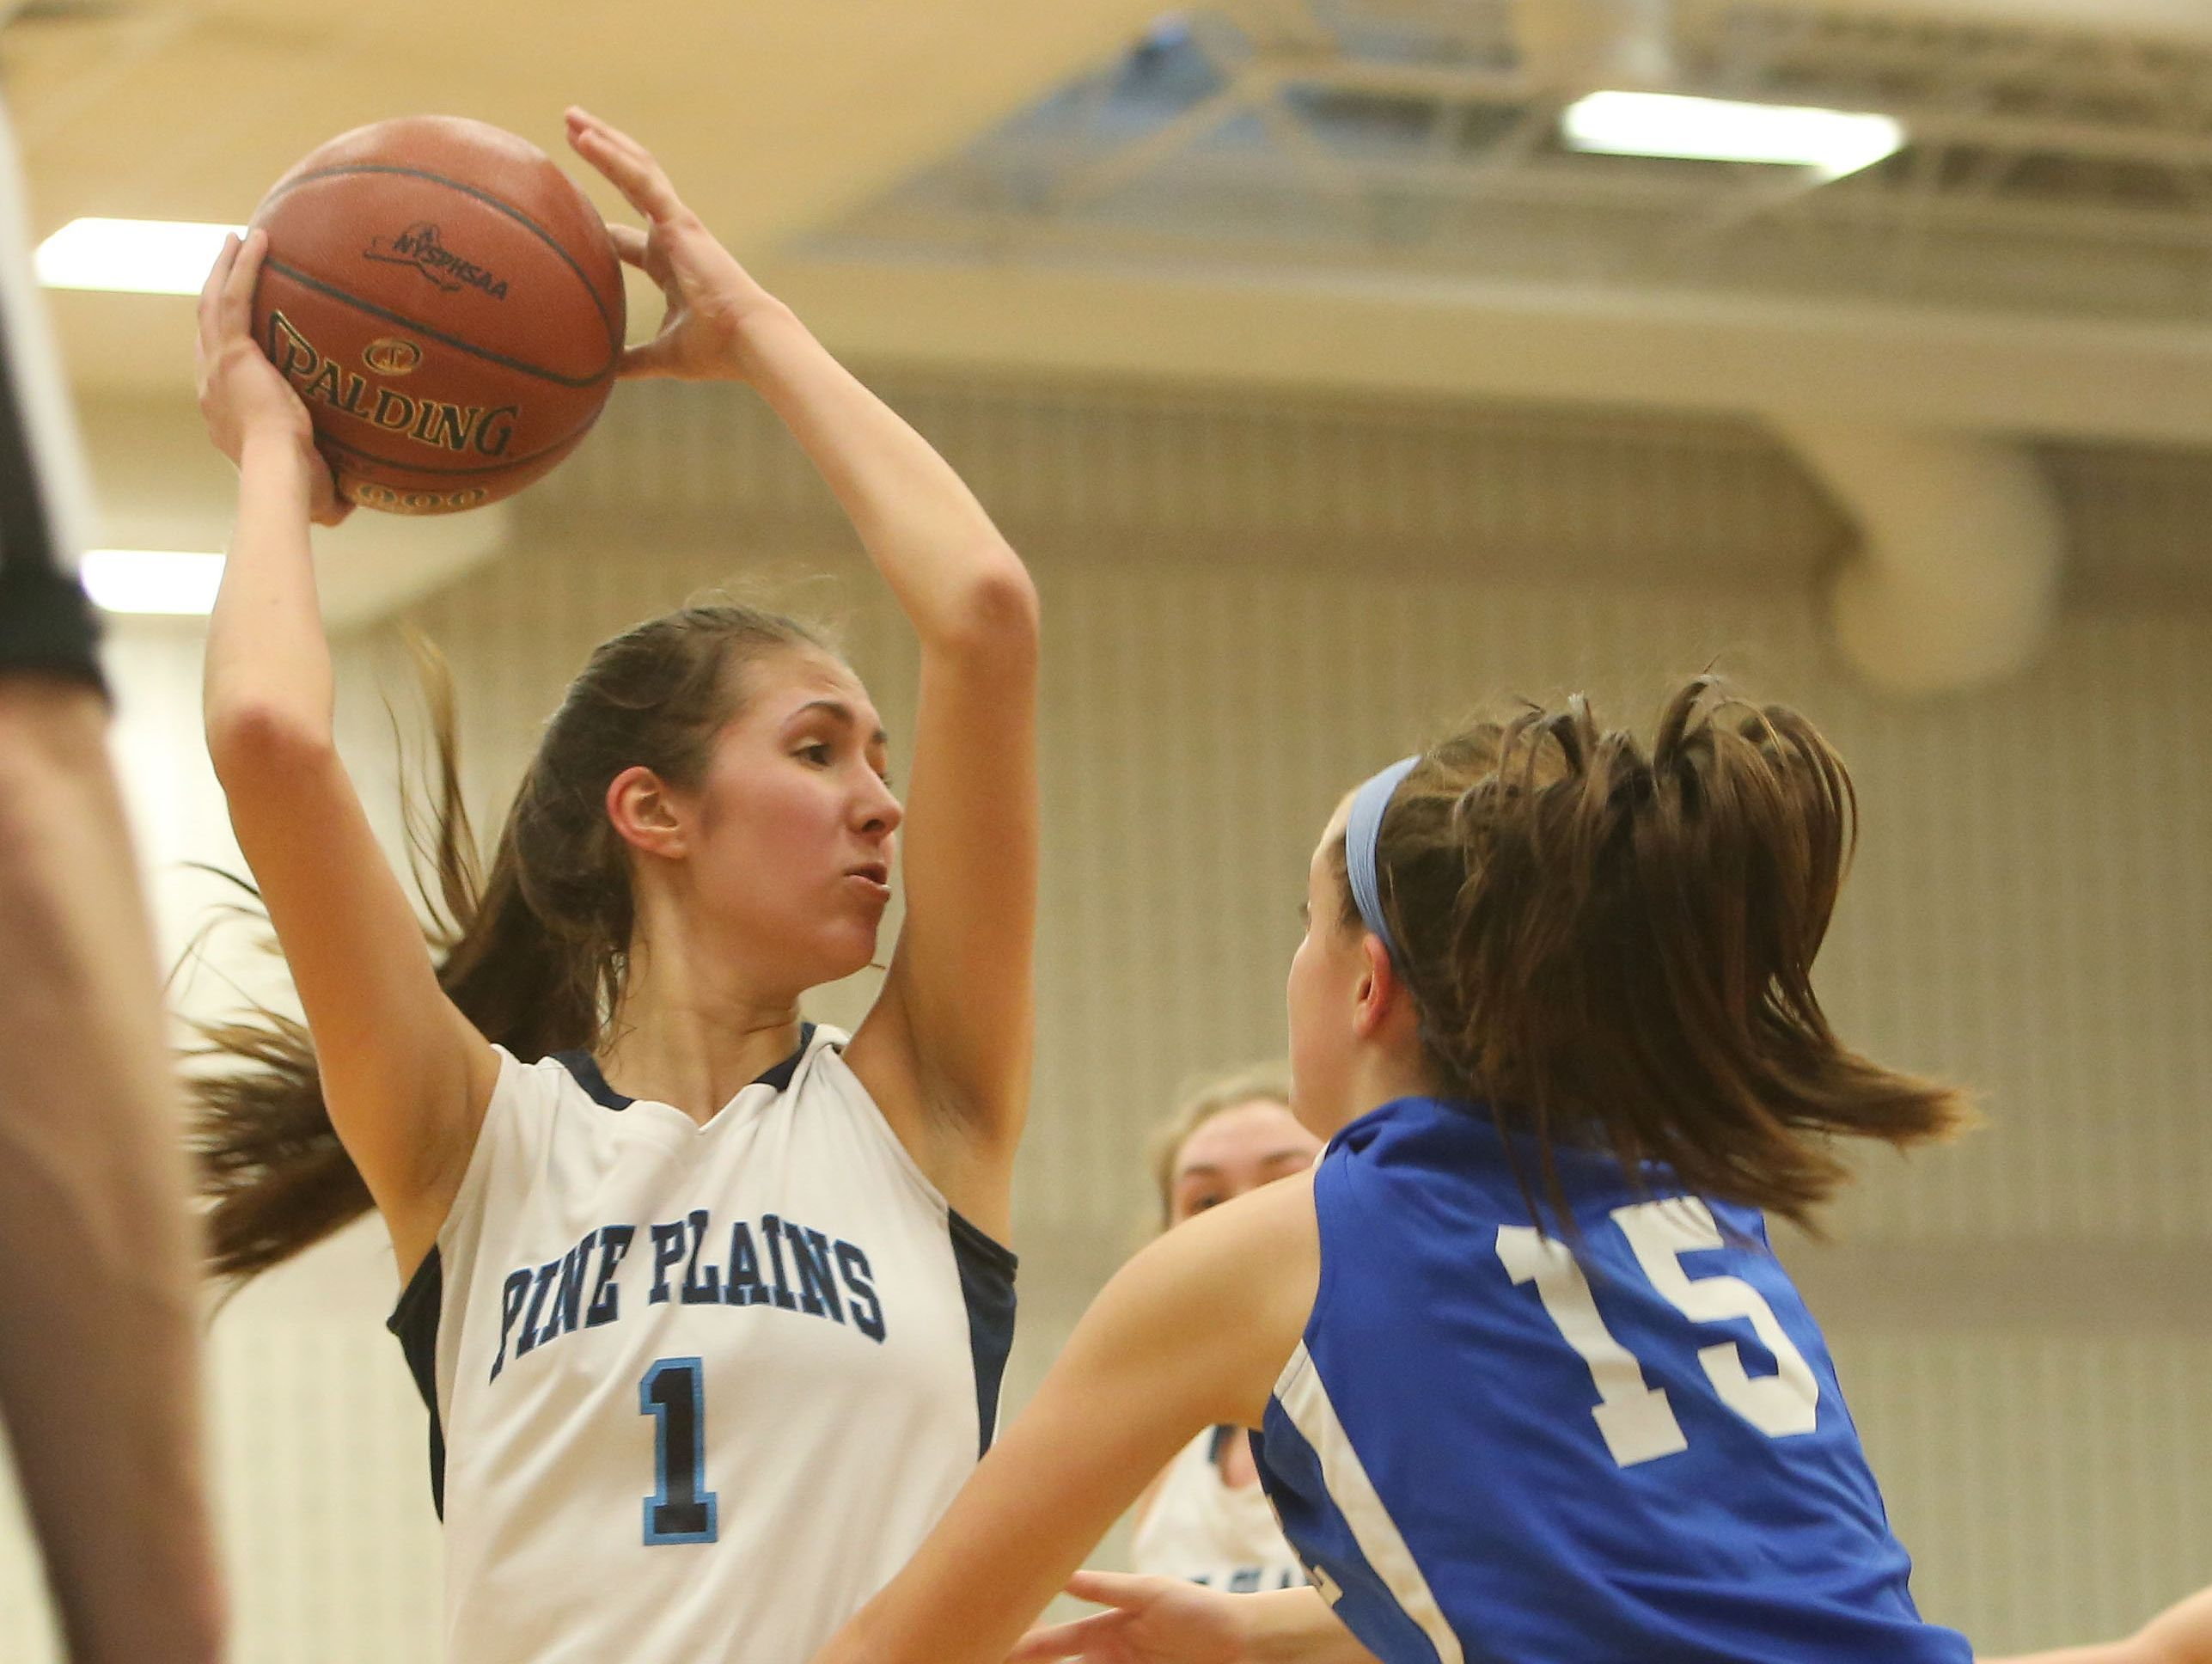 Pine Plains' Ashley Starzyk (1) looks for an open teammate while guarded by Haldane's Olivia Monteleone (15) during the state regional semifinal at SUNY New Paltz March 7, 2017.